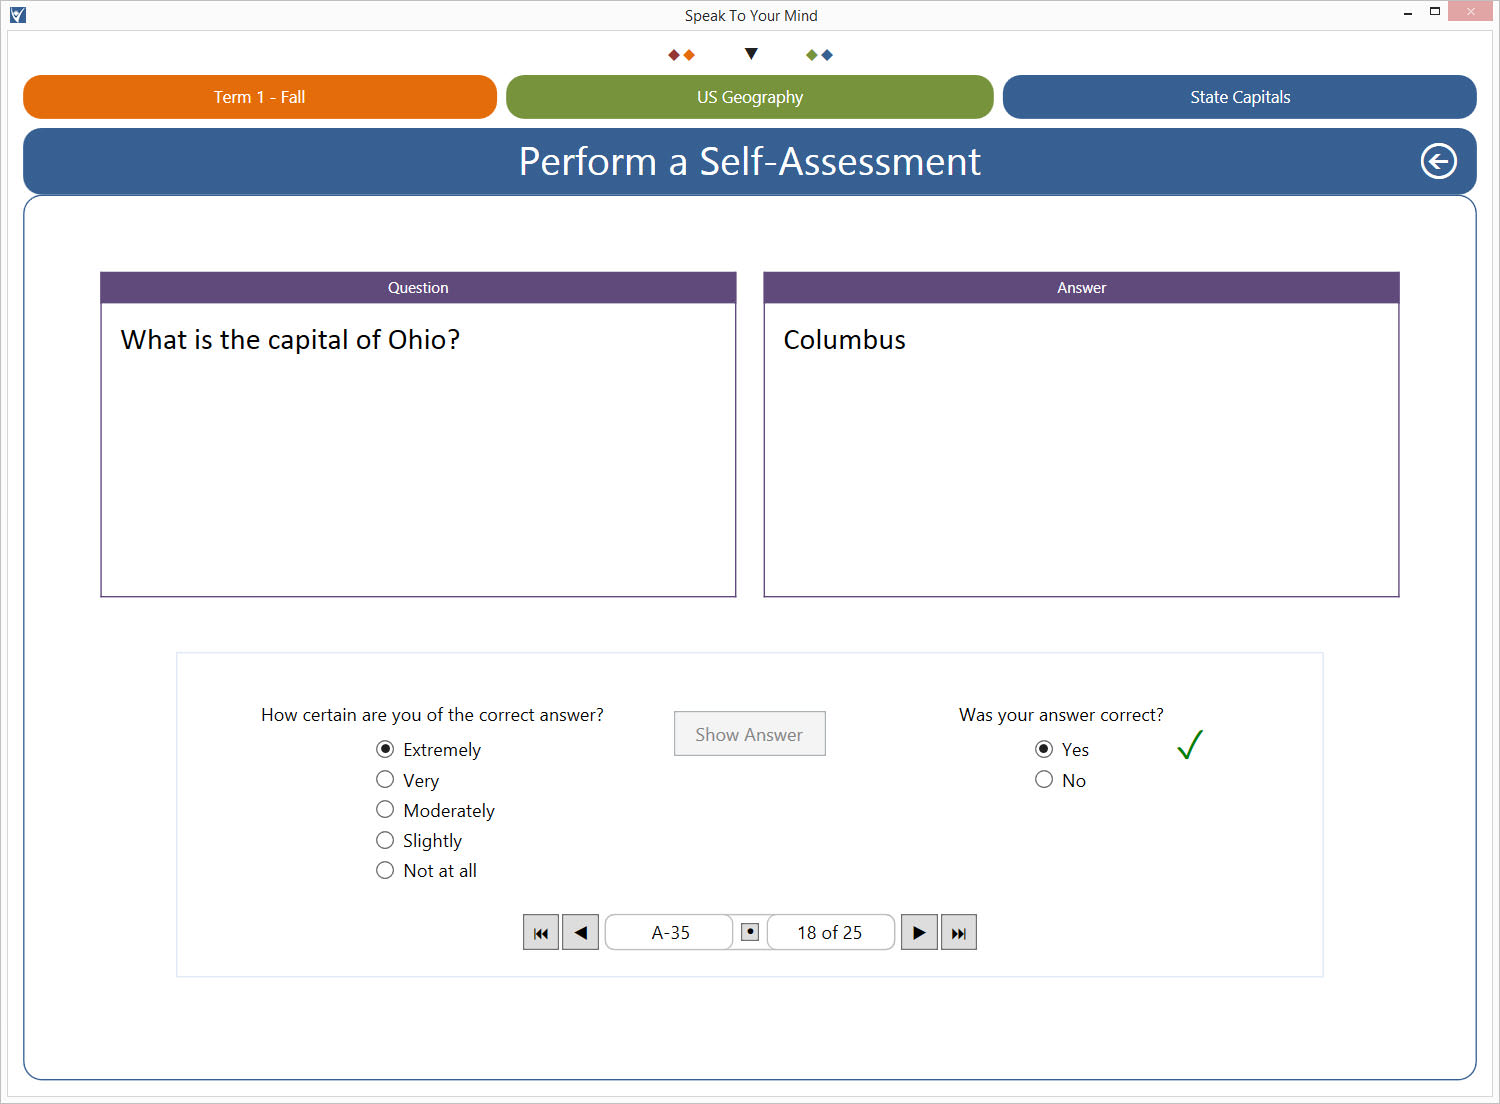 The assessment screen implements the confidence based learning technique